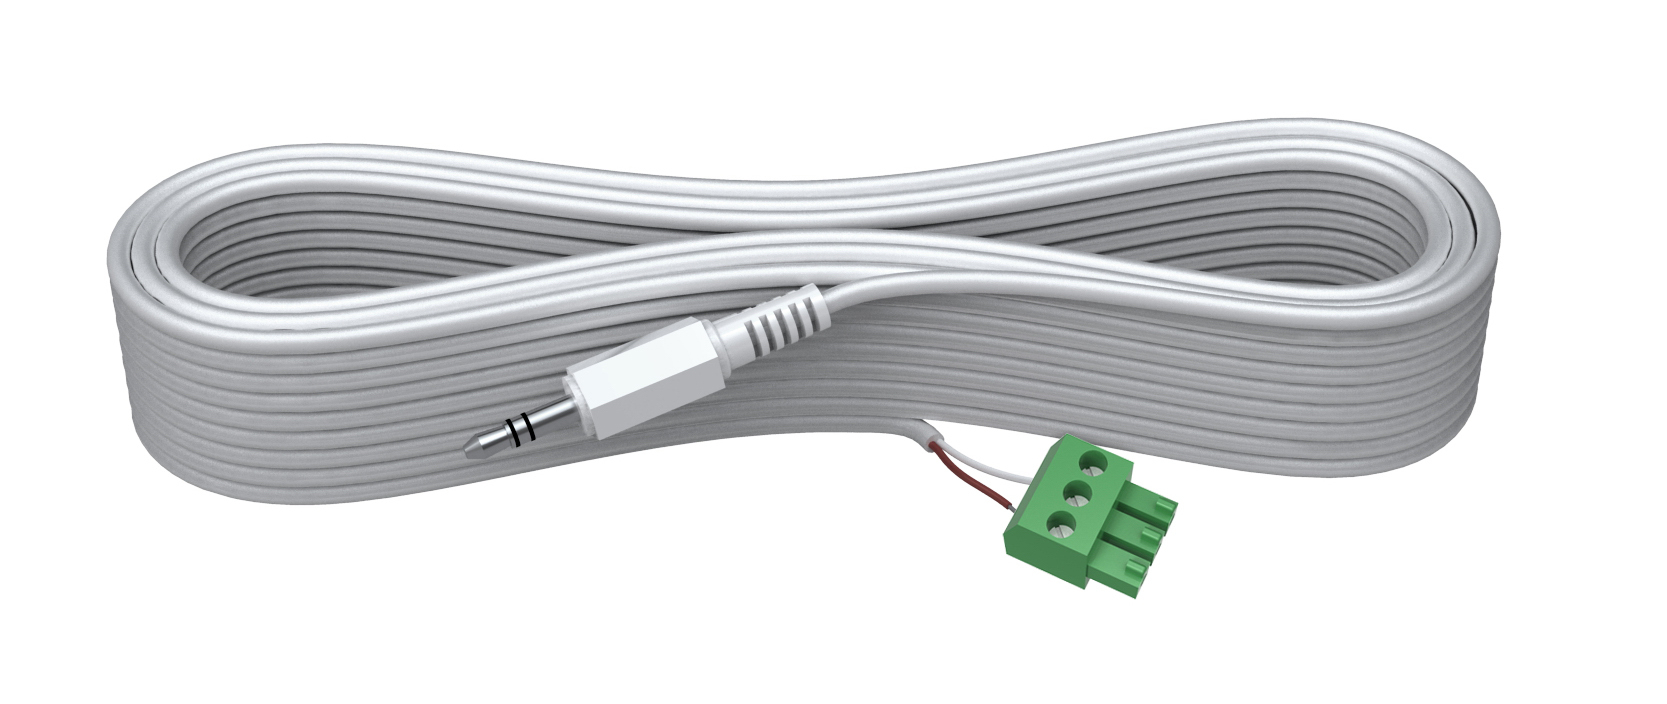 Vision TECHCONNECT SPARE 3M 3.3mM MINIJACK CABLE High-Grade White Installation Cable. A moulded connector o